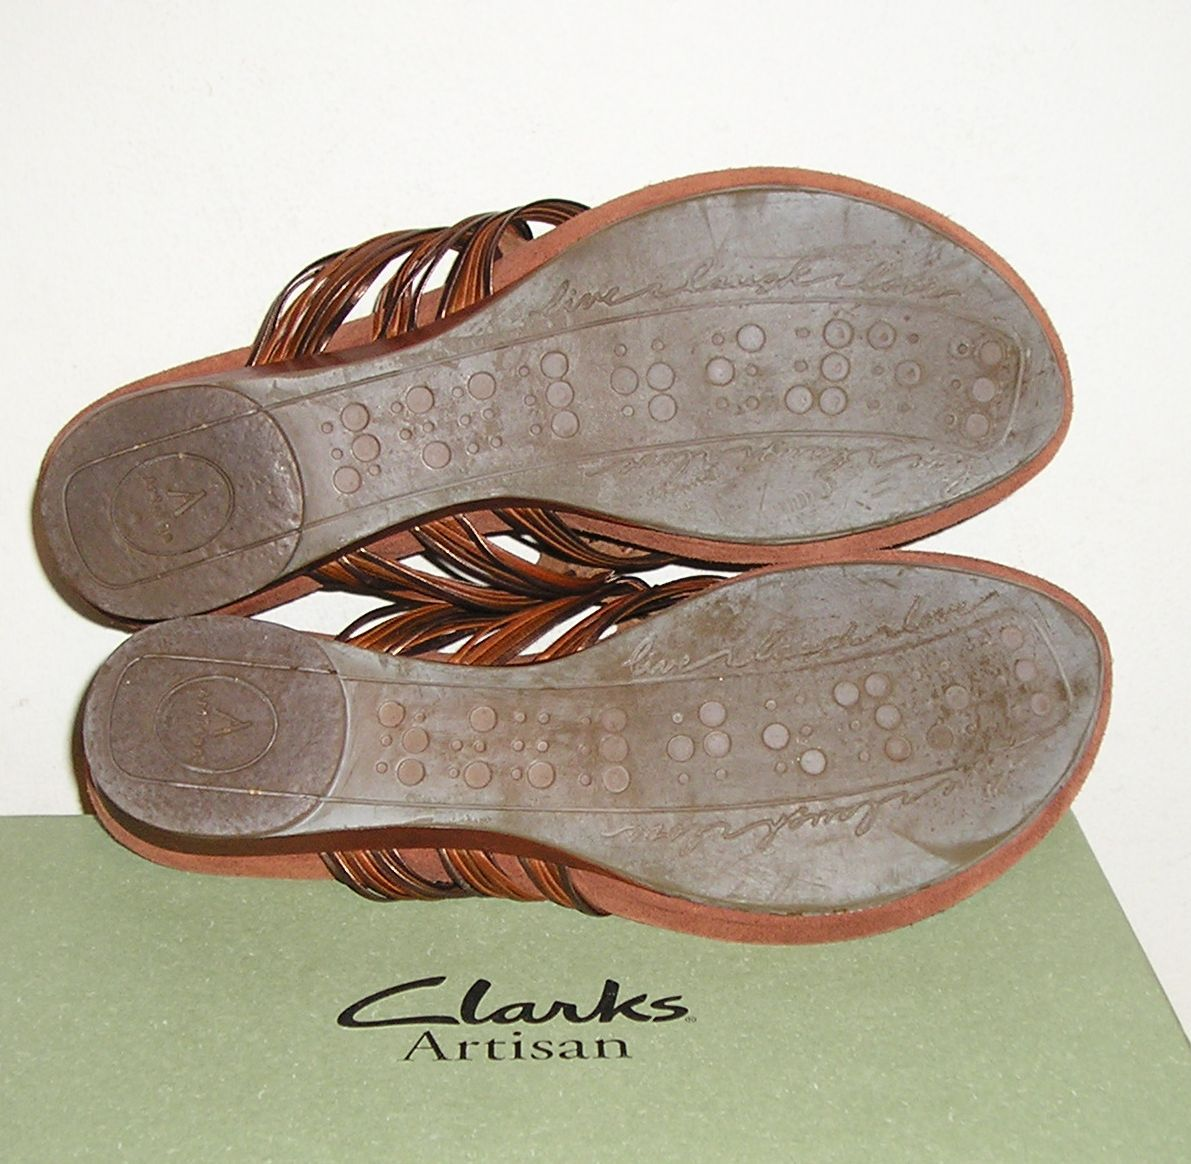 Clarks Artisan Womens Brown Leather Thongs Sandals Shoes -4761